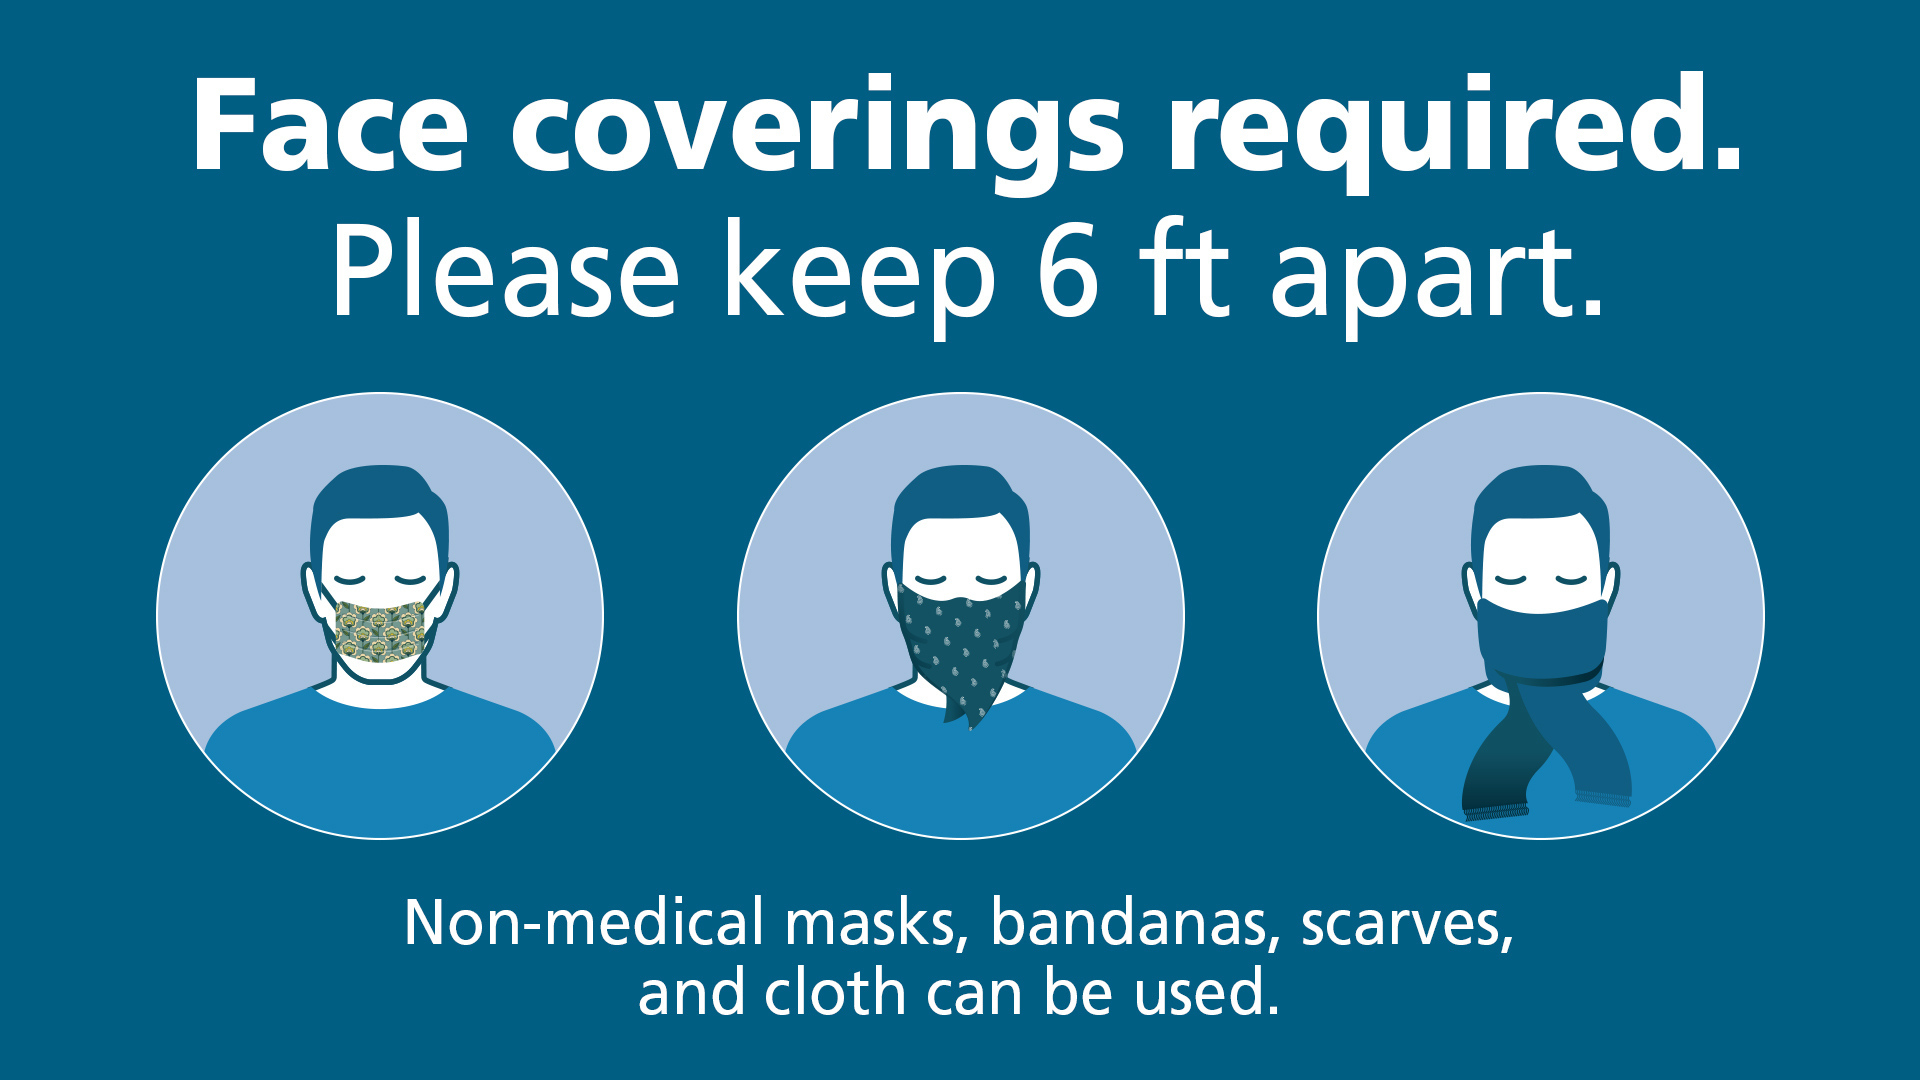 Face coverings required. Non-medical masks, bandanas, scarves, and cloth can be used.